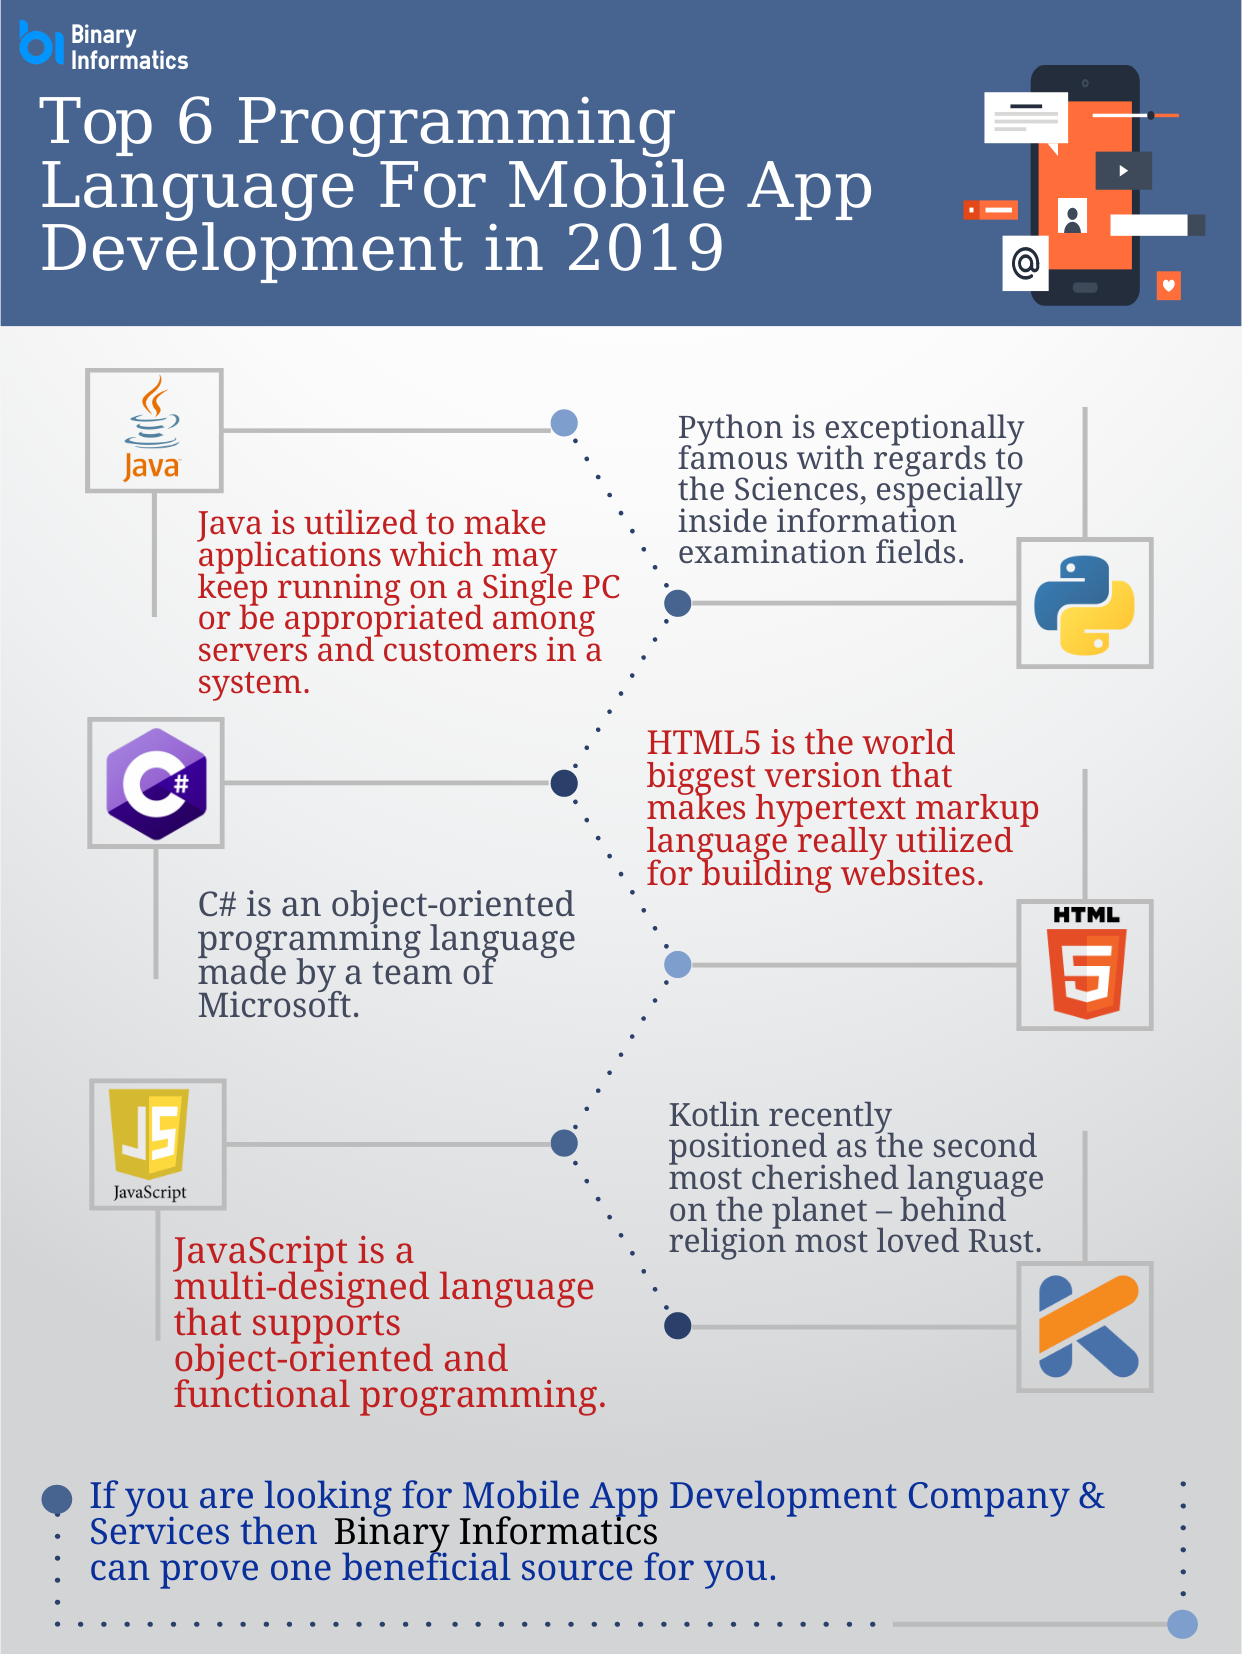 Top 7 Programming language for Mobile App Development in